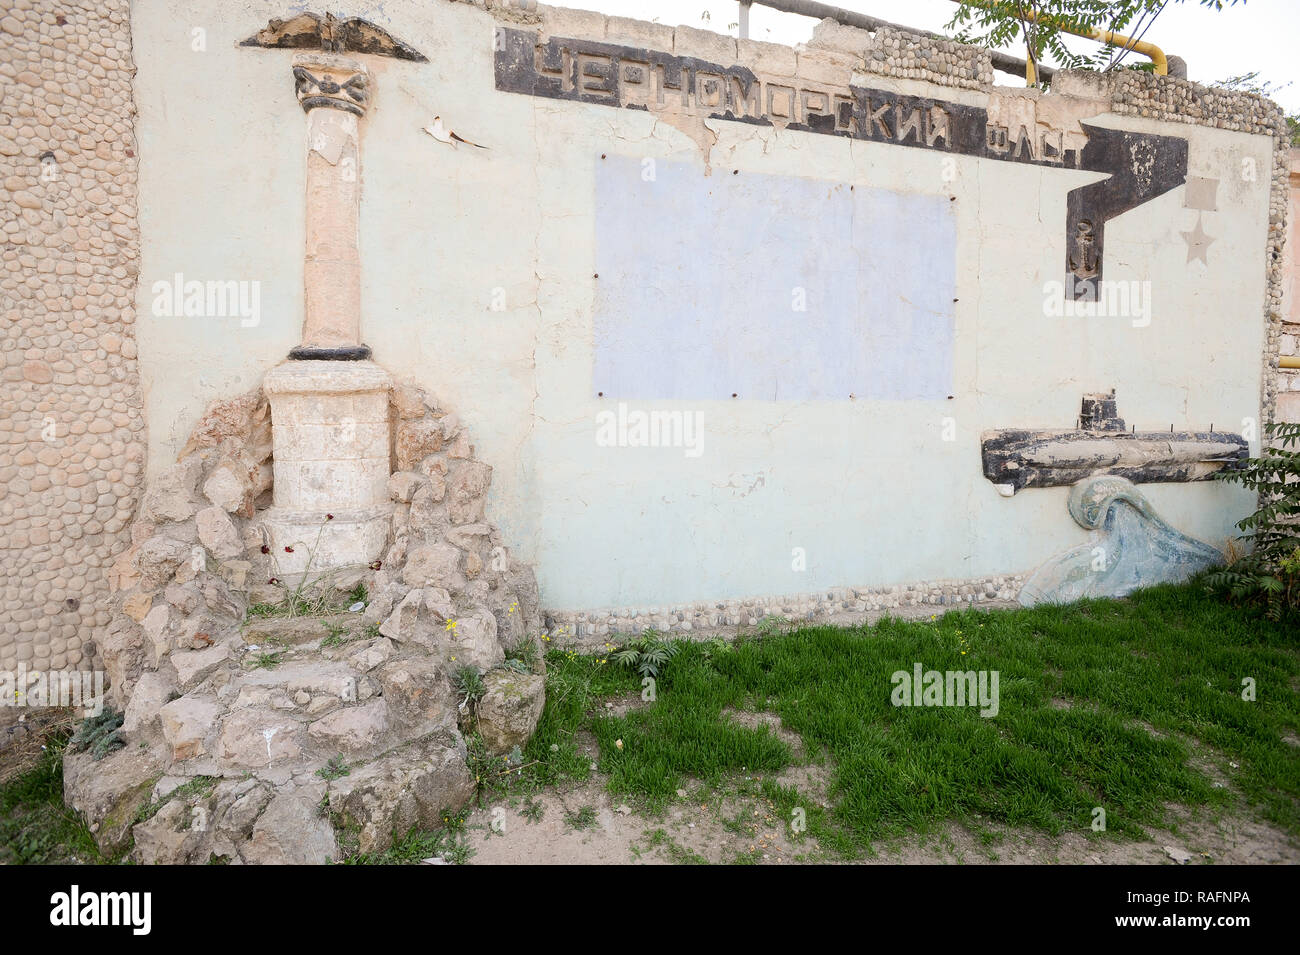 Monument to fallen Black Sea Fleet seamen during WWII 1941 to 1945 in front of Morskij Muziejnyj Komplieks Balaklava (Naval museum complex Balaklava)  - Stock Image